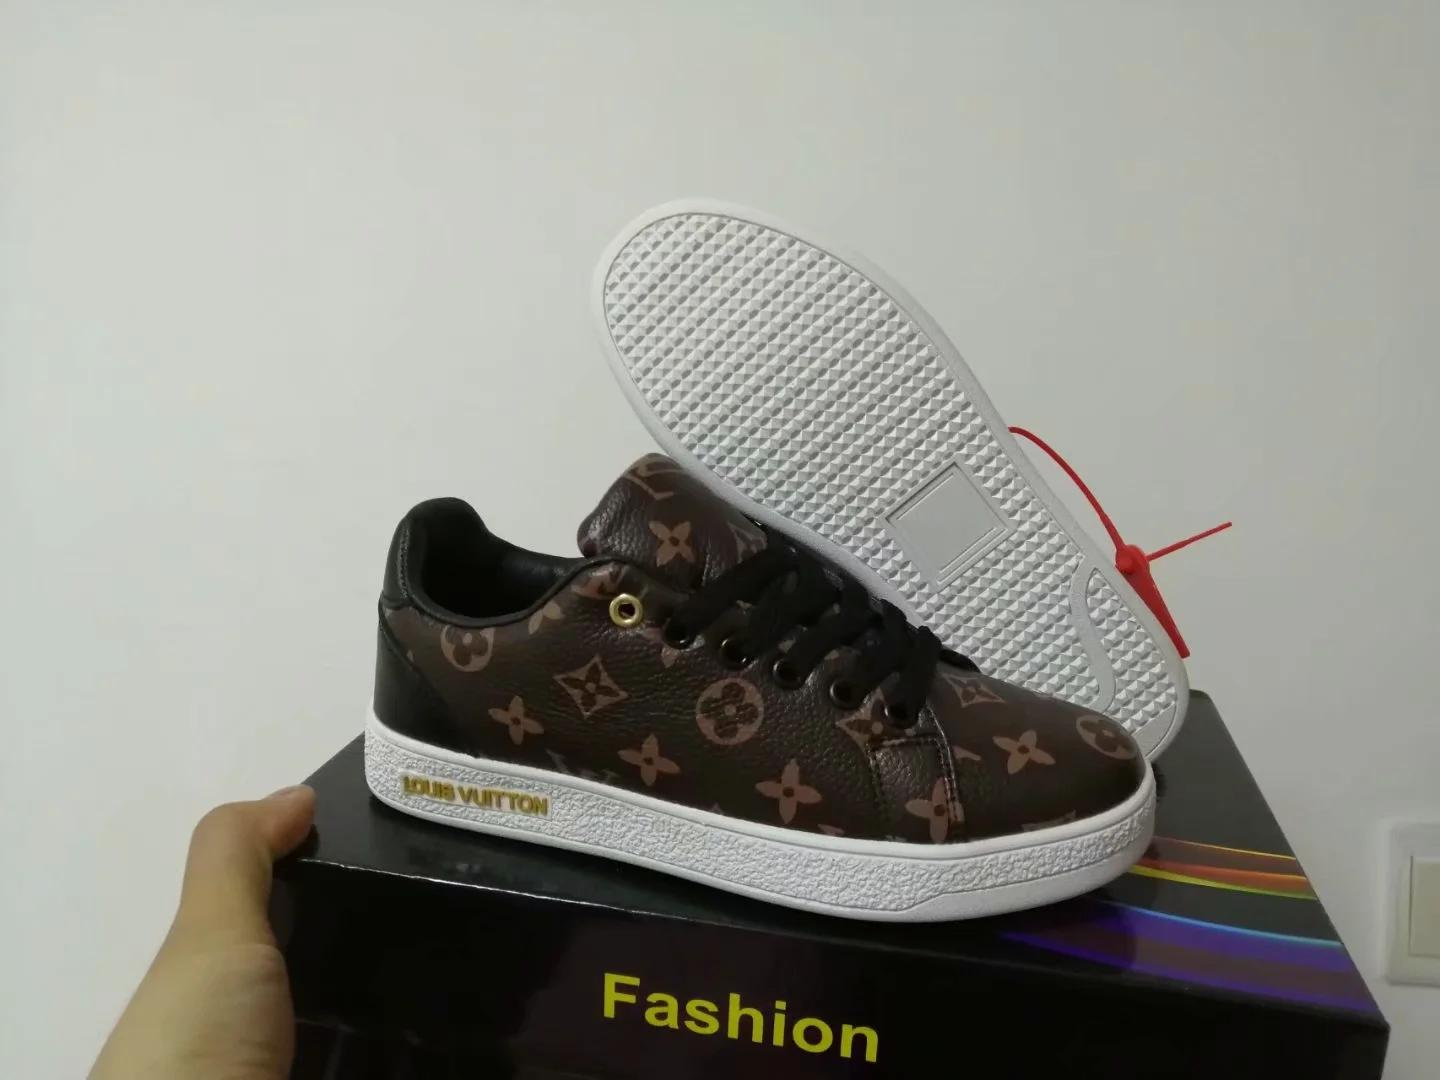 Brand letter L and V new sport Suede Walking Hiking Shoes running shoes Fall fashion boys flat casual grils sneakers